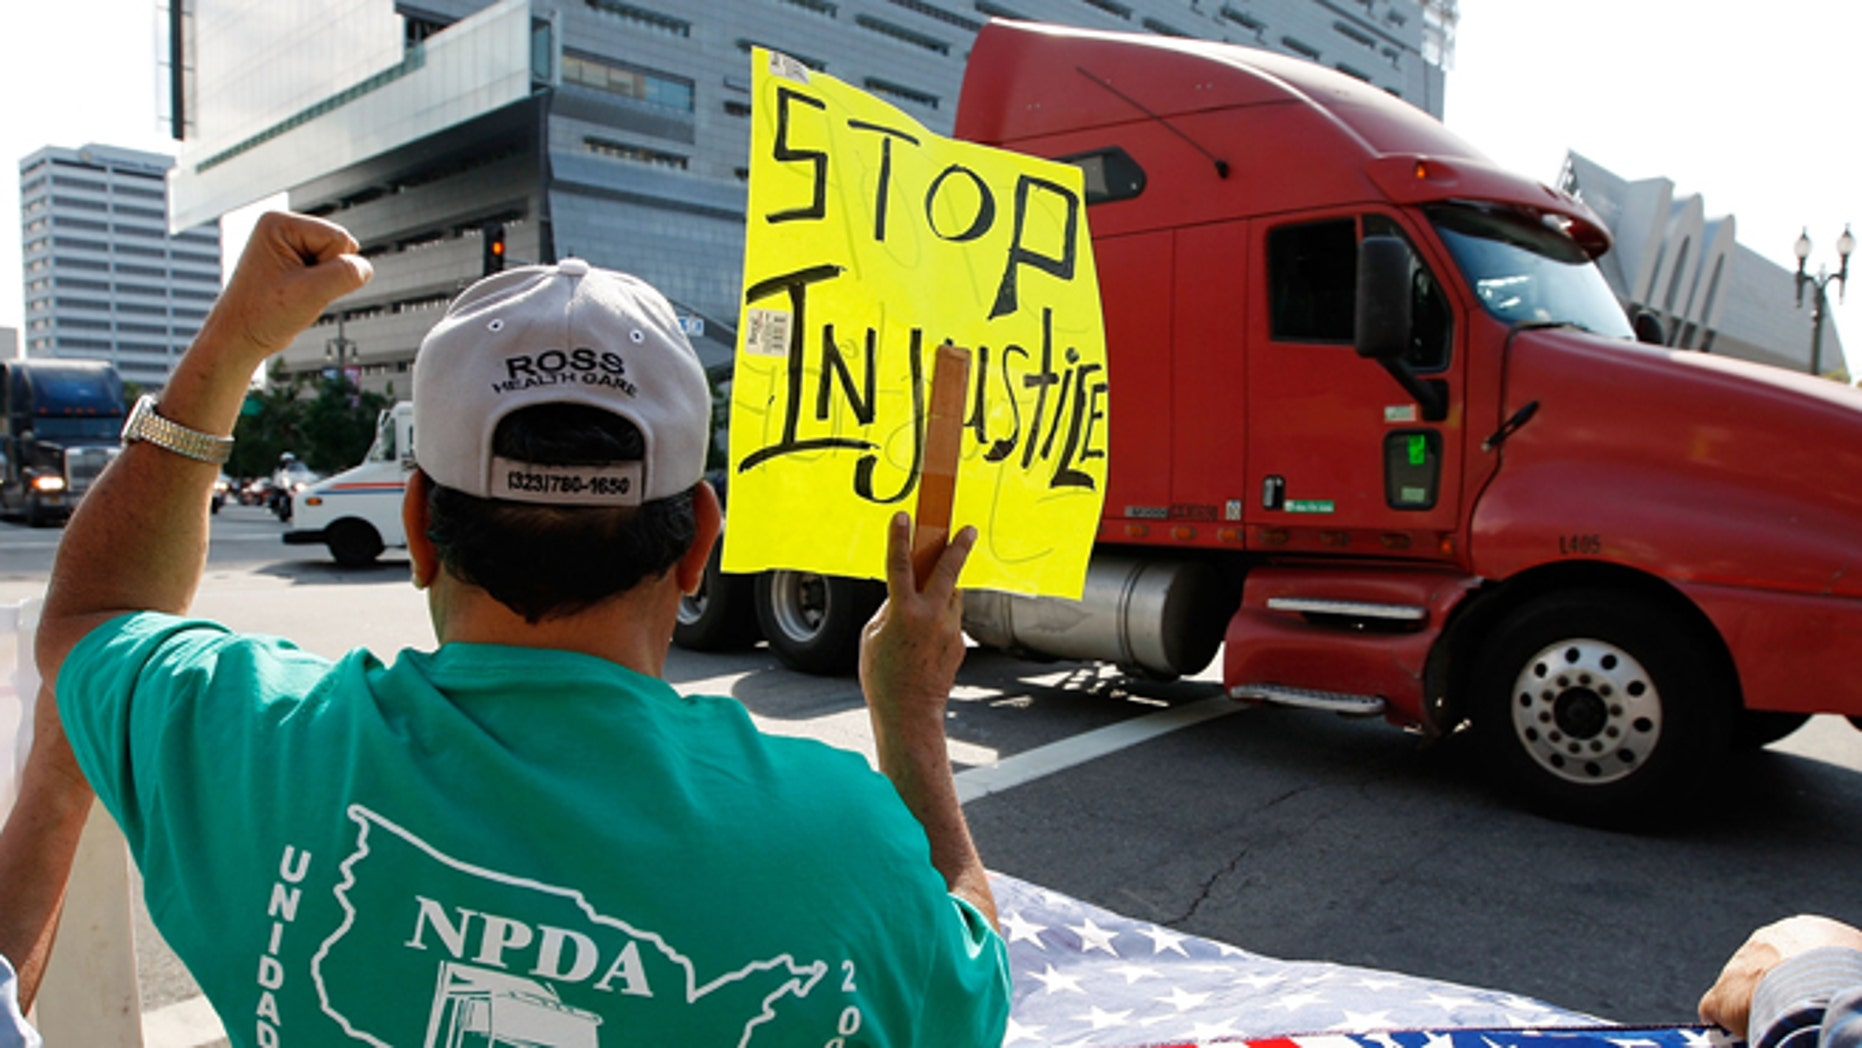 LOS ANGELES, CA - NOVEMBER 13:  A truck drives near City Hall to protest shipping container fees being assessed against independent truckers as part of the ports' Clean Truck Program to allow only newer, less-polluting trucks at the ports, on November 13, 2009 in Los Angeles, California. The members of the National Port Drivers Association, who work the ports of Los Angeles and Long Beach,  formed caravans from the ports to City Hall in downtown Los Angeles to demonstrate against the fees that they say impact their wages and hours. In October, the Port of Long Beach and the American Trucking Assn. reached a settlement over disputed elements of the air pollution cleanup plan. The port drop requirements not directly related to cleaning up the environment such as a demand for trucking companies to file financial reports, and truckers agreed to emissions, safety and security requirements. In an effort to get rid of dirty trucks, the ban on all 1988 and older trucks from the ports remains and as of January, only 2004-or-later trucks will be allowed in the port complex. Thousands of trucks make daily trips into and out of the ports of Long Beach and Los Angeles which make up the busiest seaport complex in the nation.  (Photo by David McNew/Getty Images)